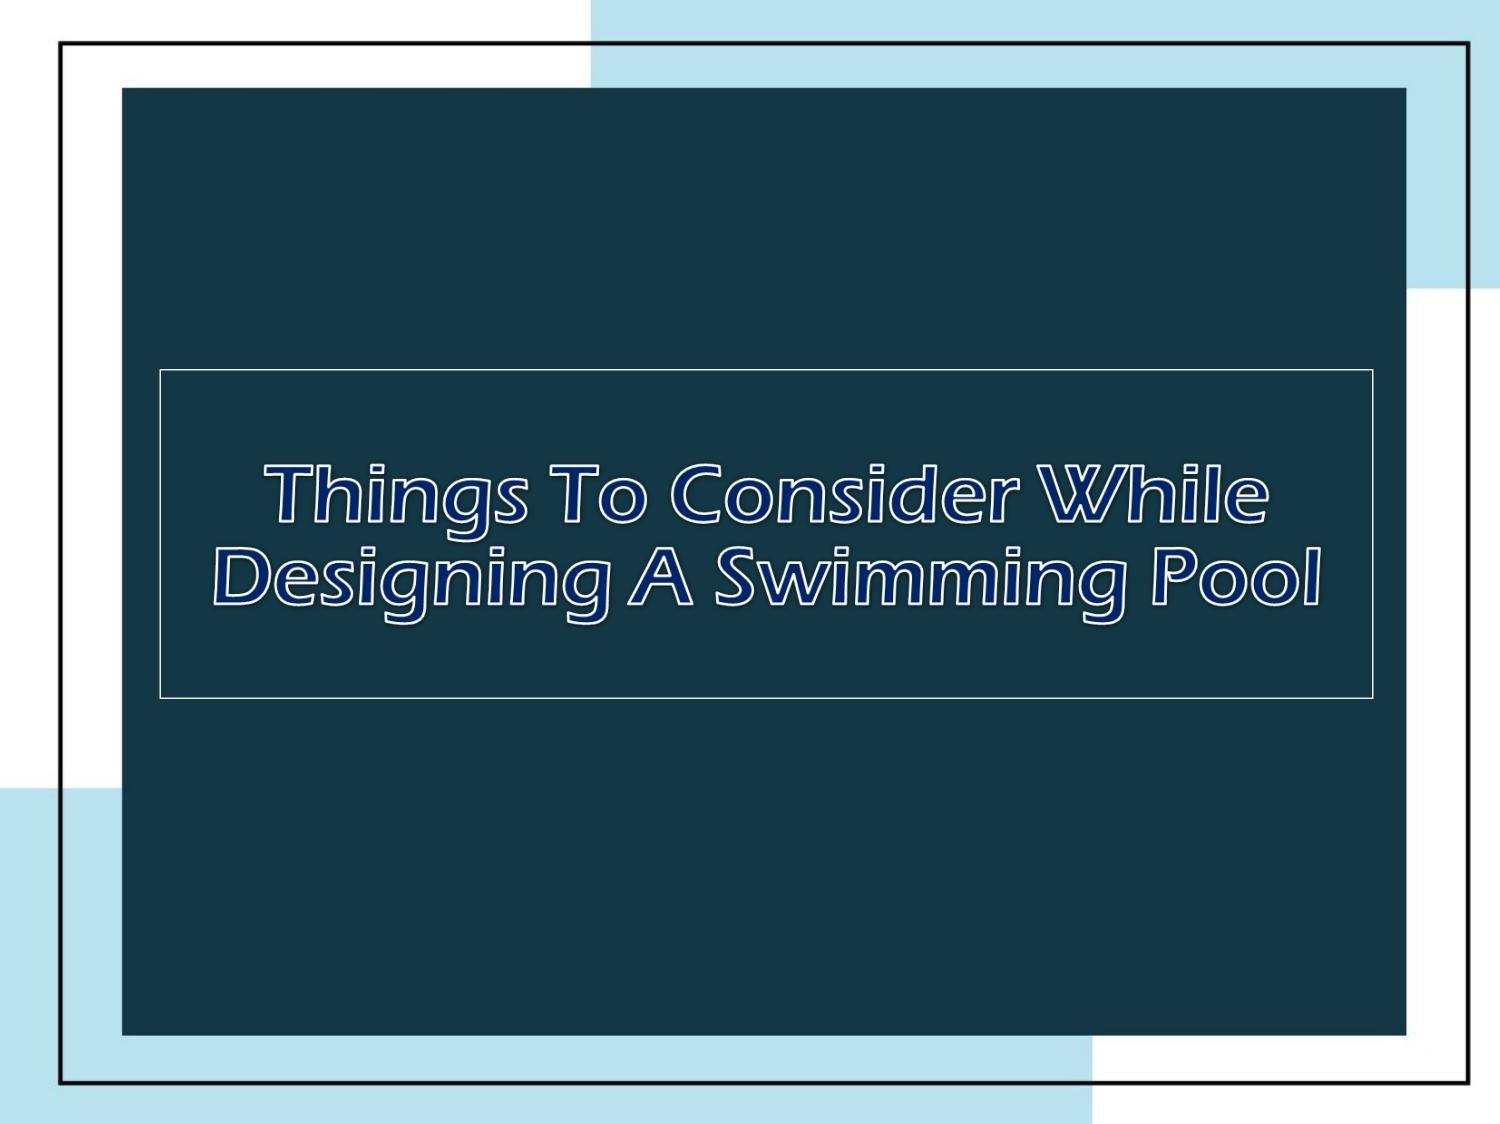 Things To Consider While Designing A Swimming Pool By Rileygwynne Issuu